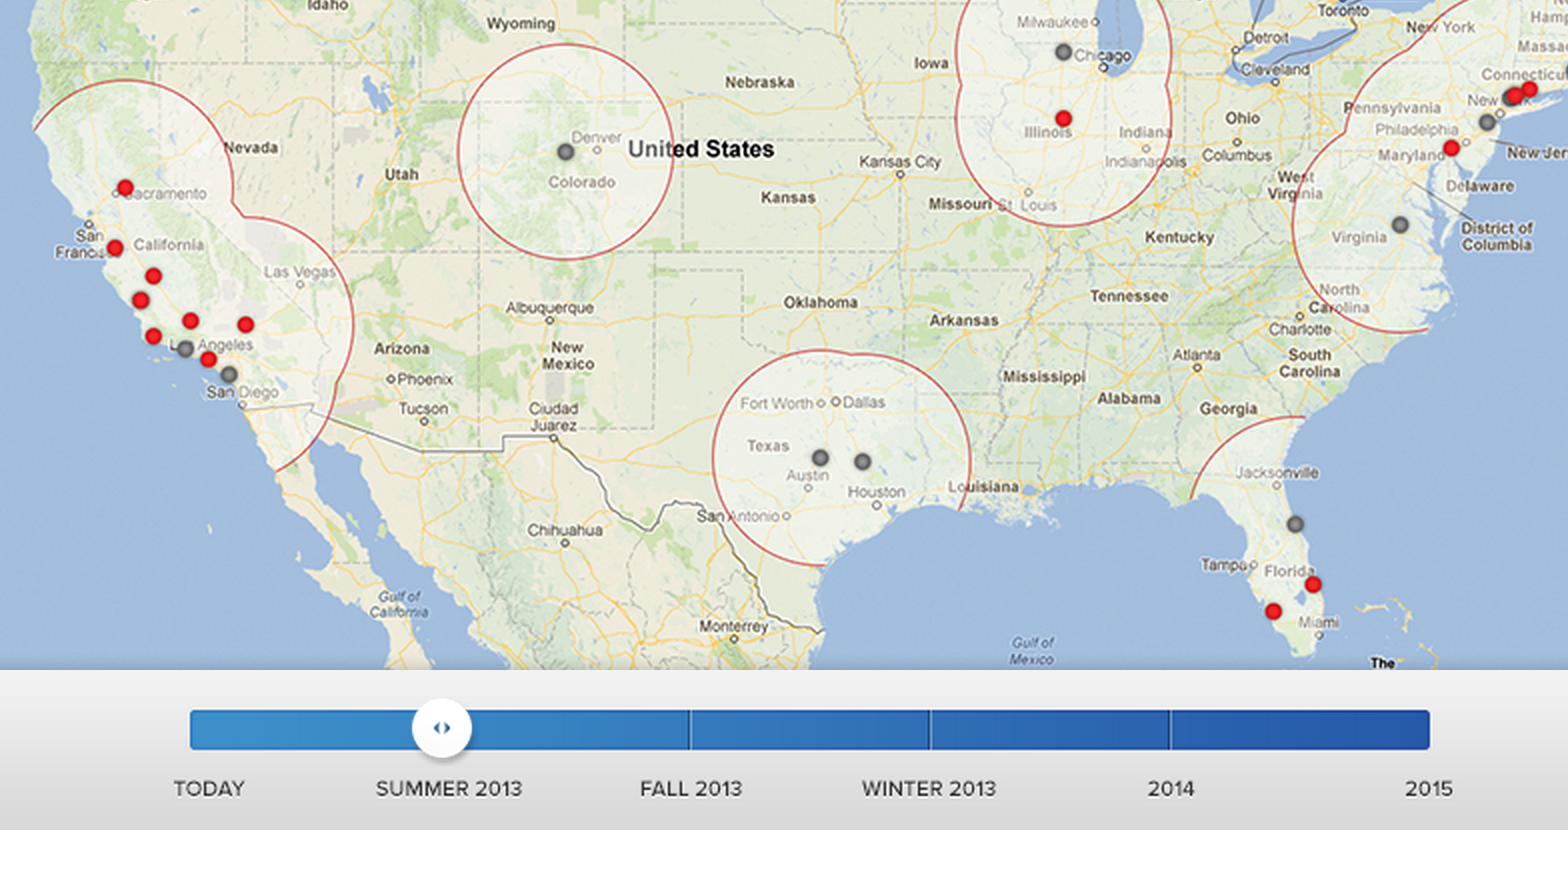 Gray dots indicate Summer Supercharger station openings